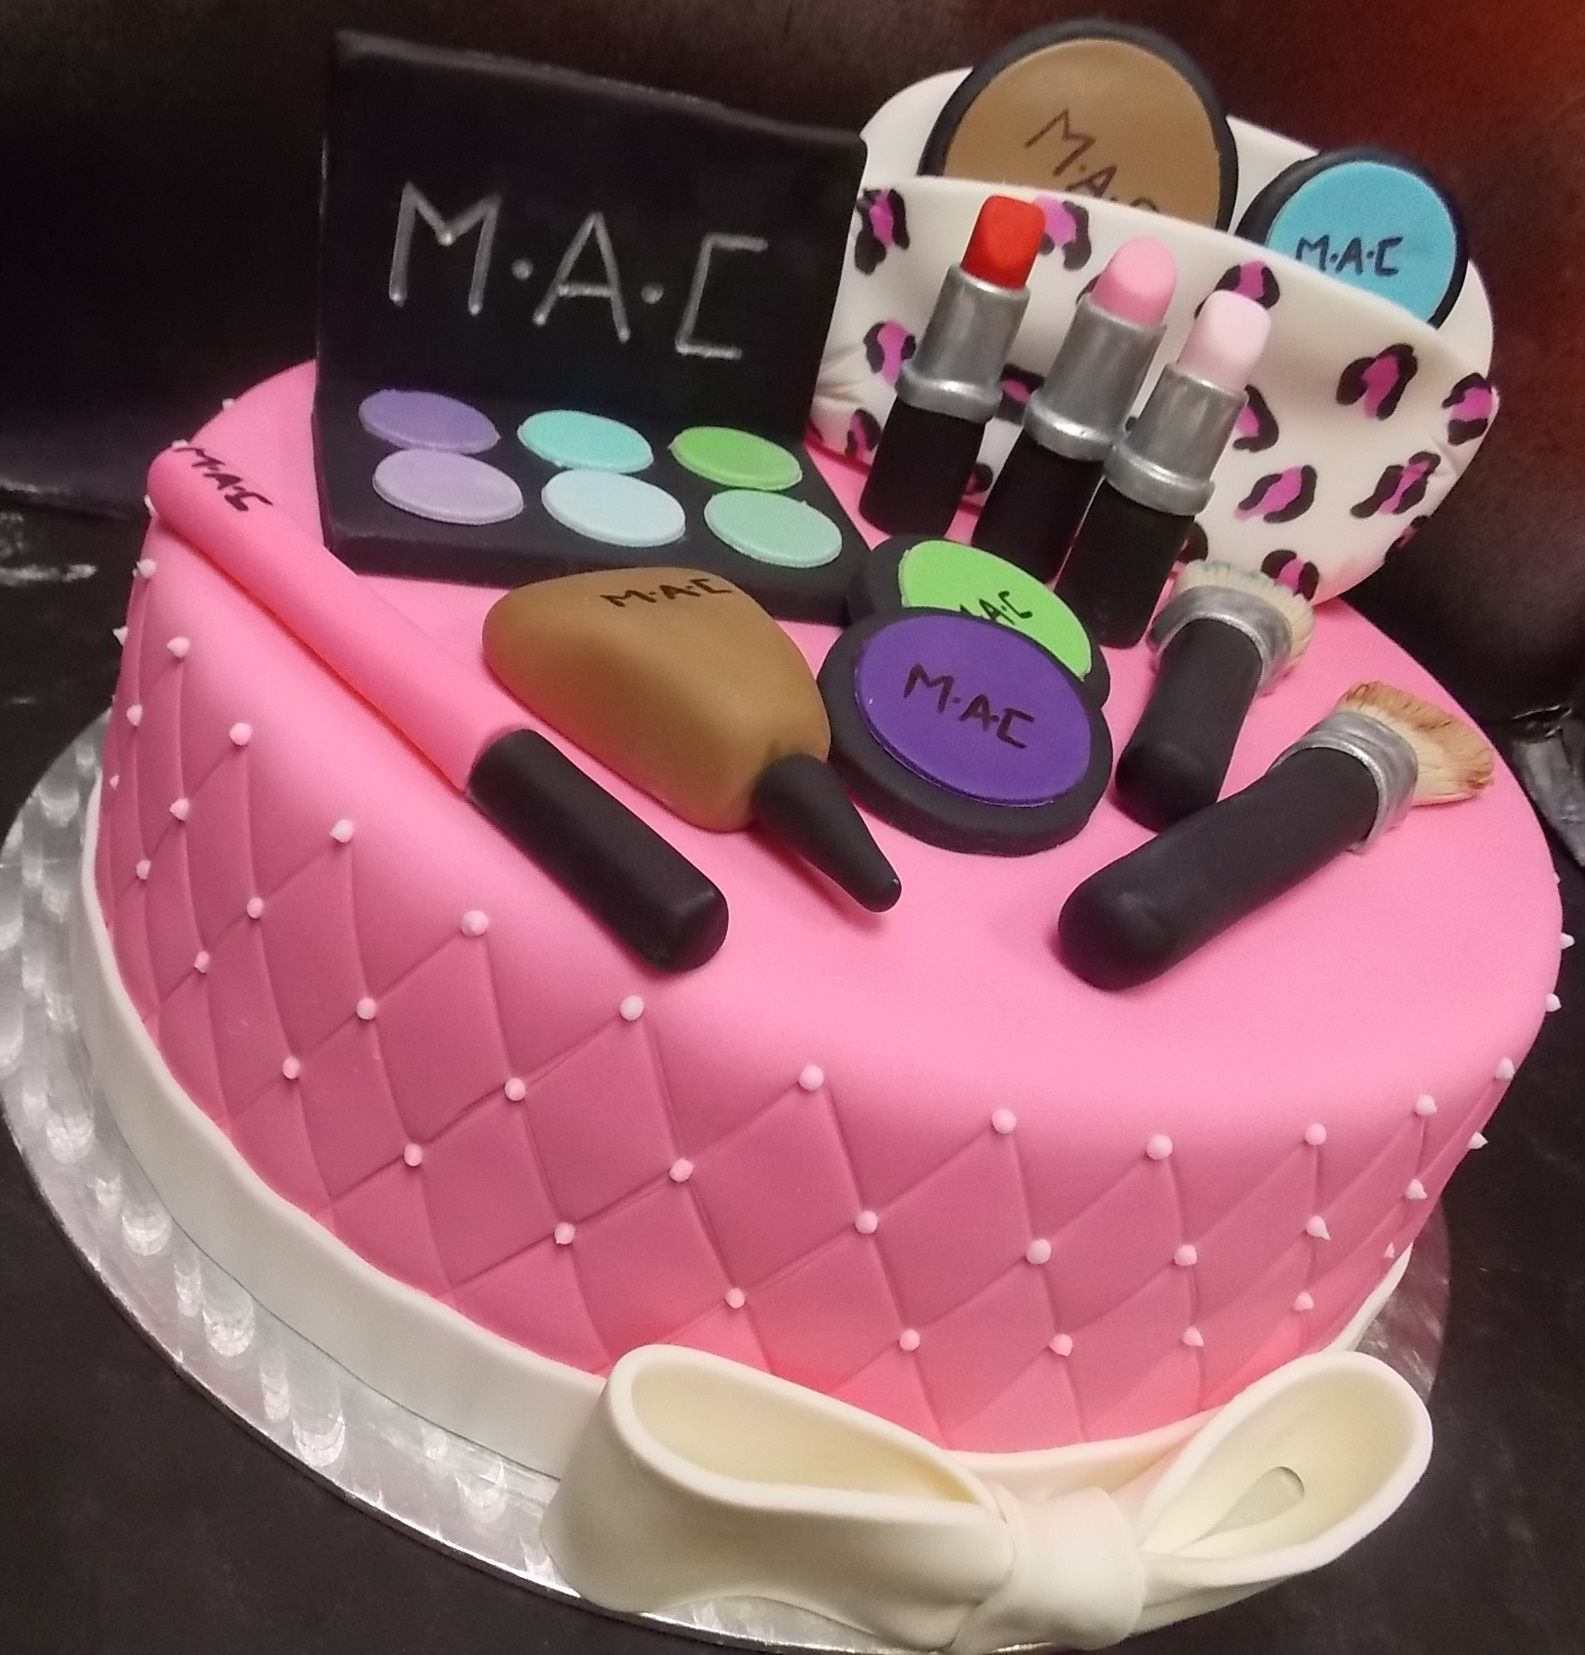 Cake Fondant Nails: MAC Makeup Themed Custom Cake